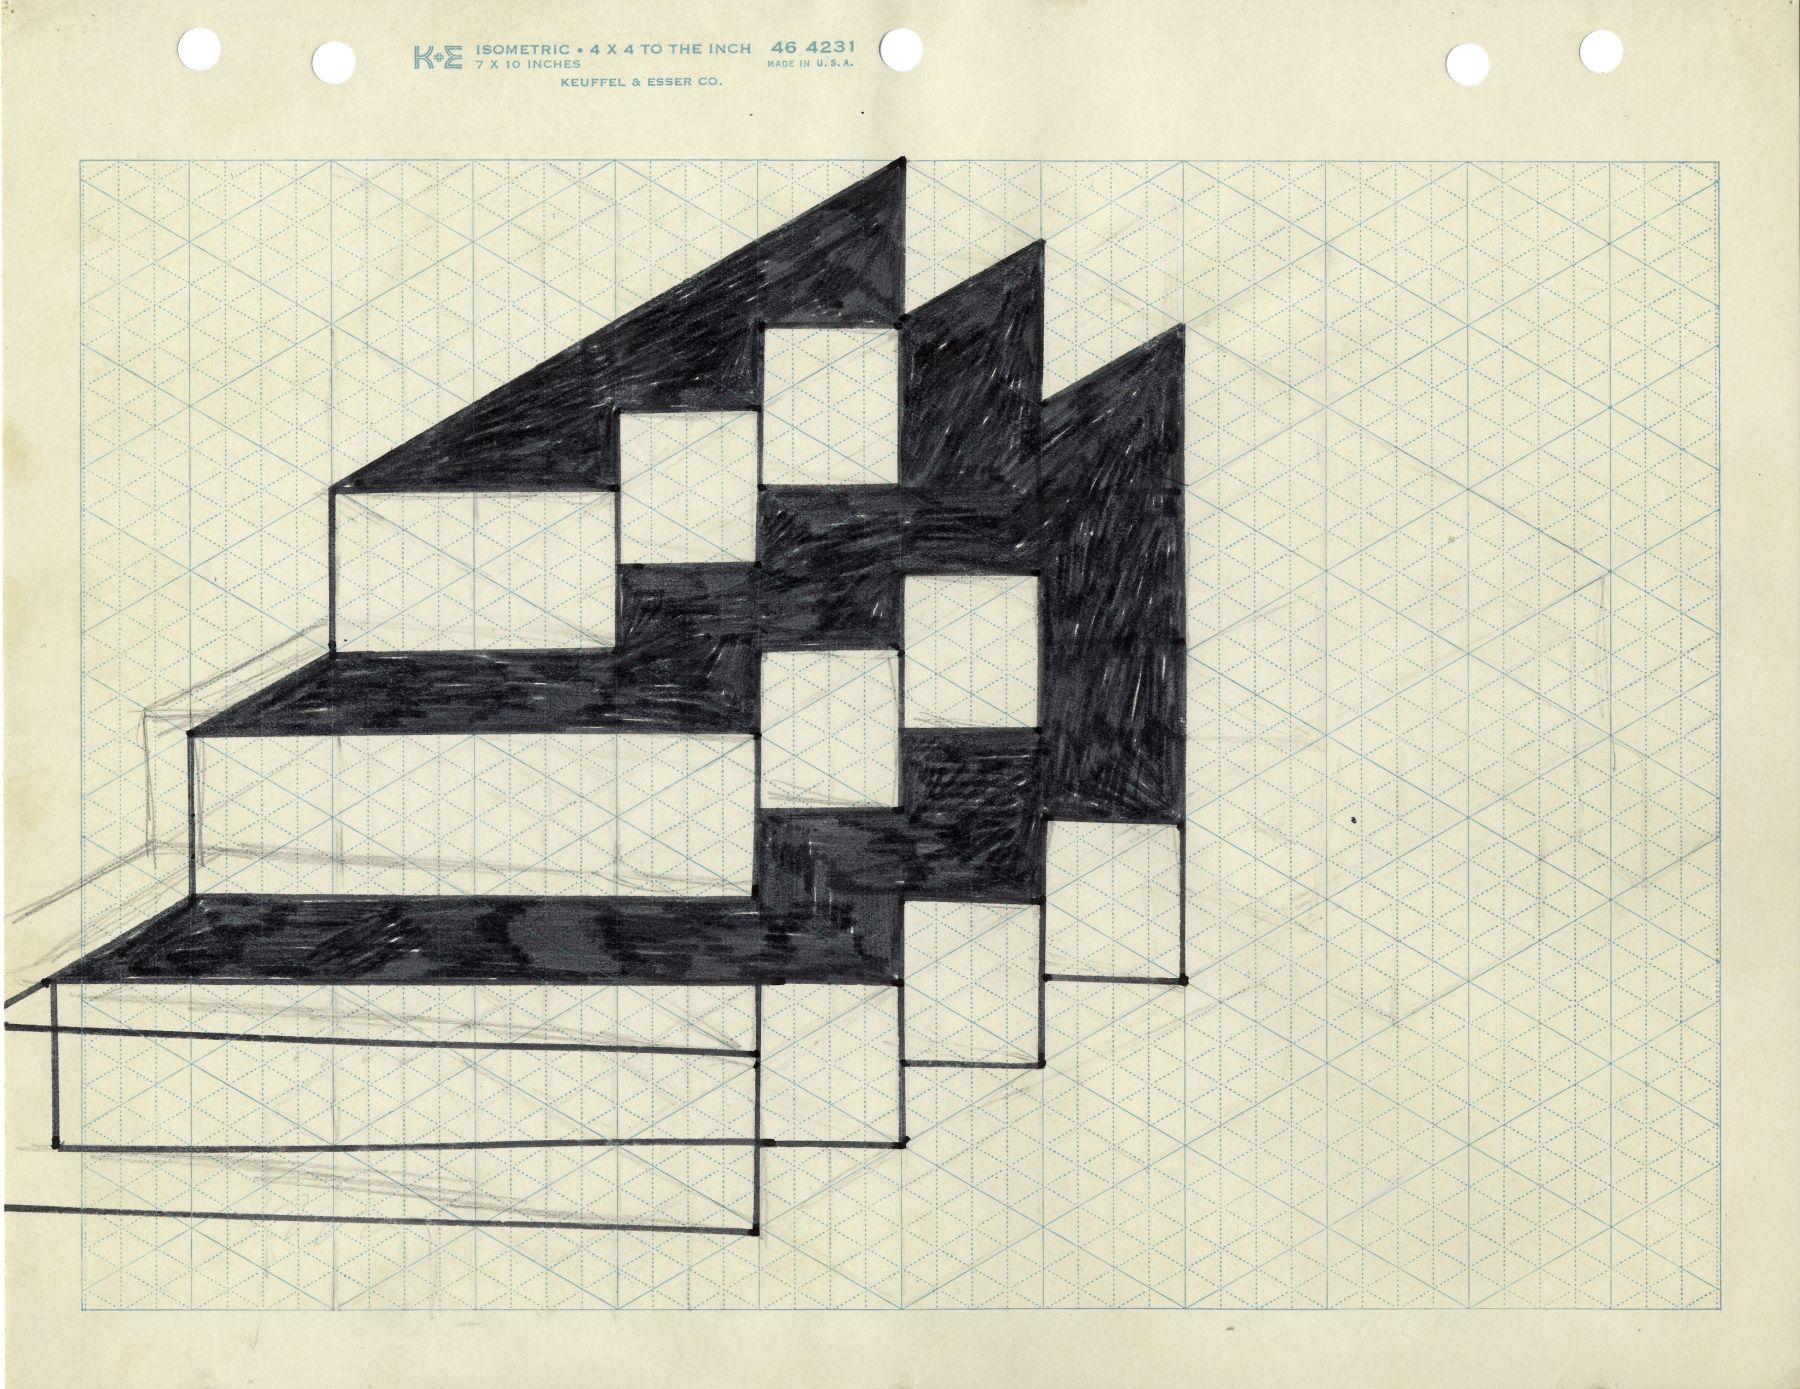 Mel Bochner,Untitled (Study for 3x3), 1966. Ink and pencil on graph paper, 8 1/2 x 11 inches.